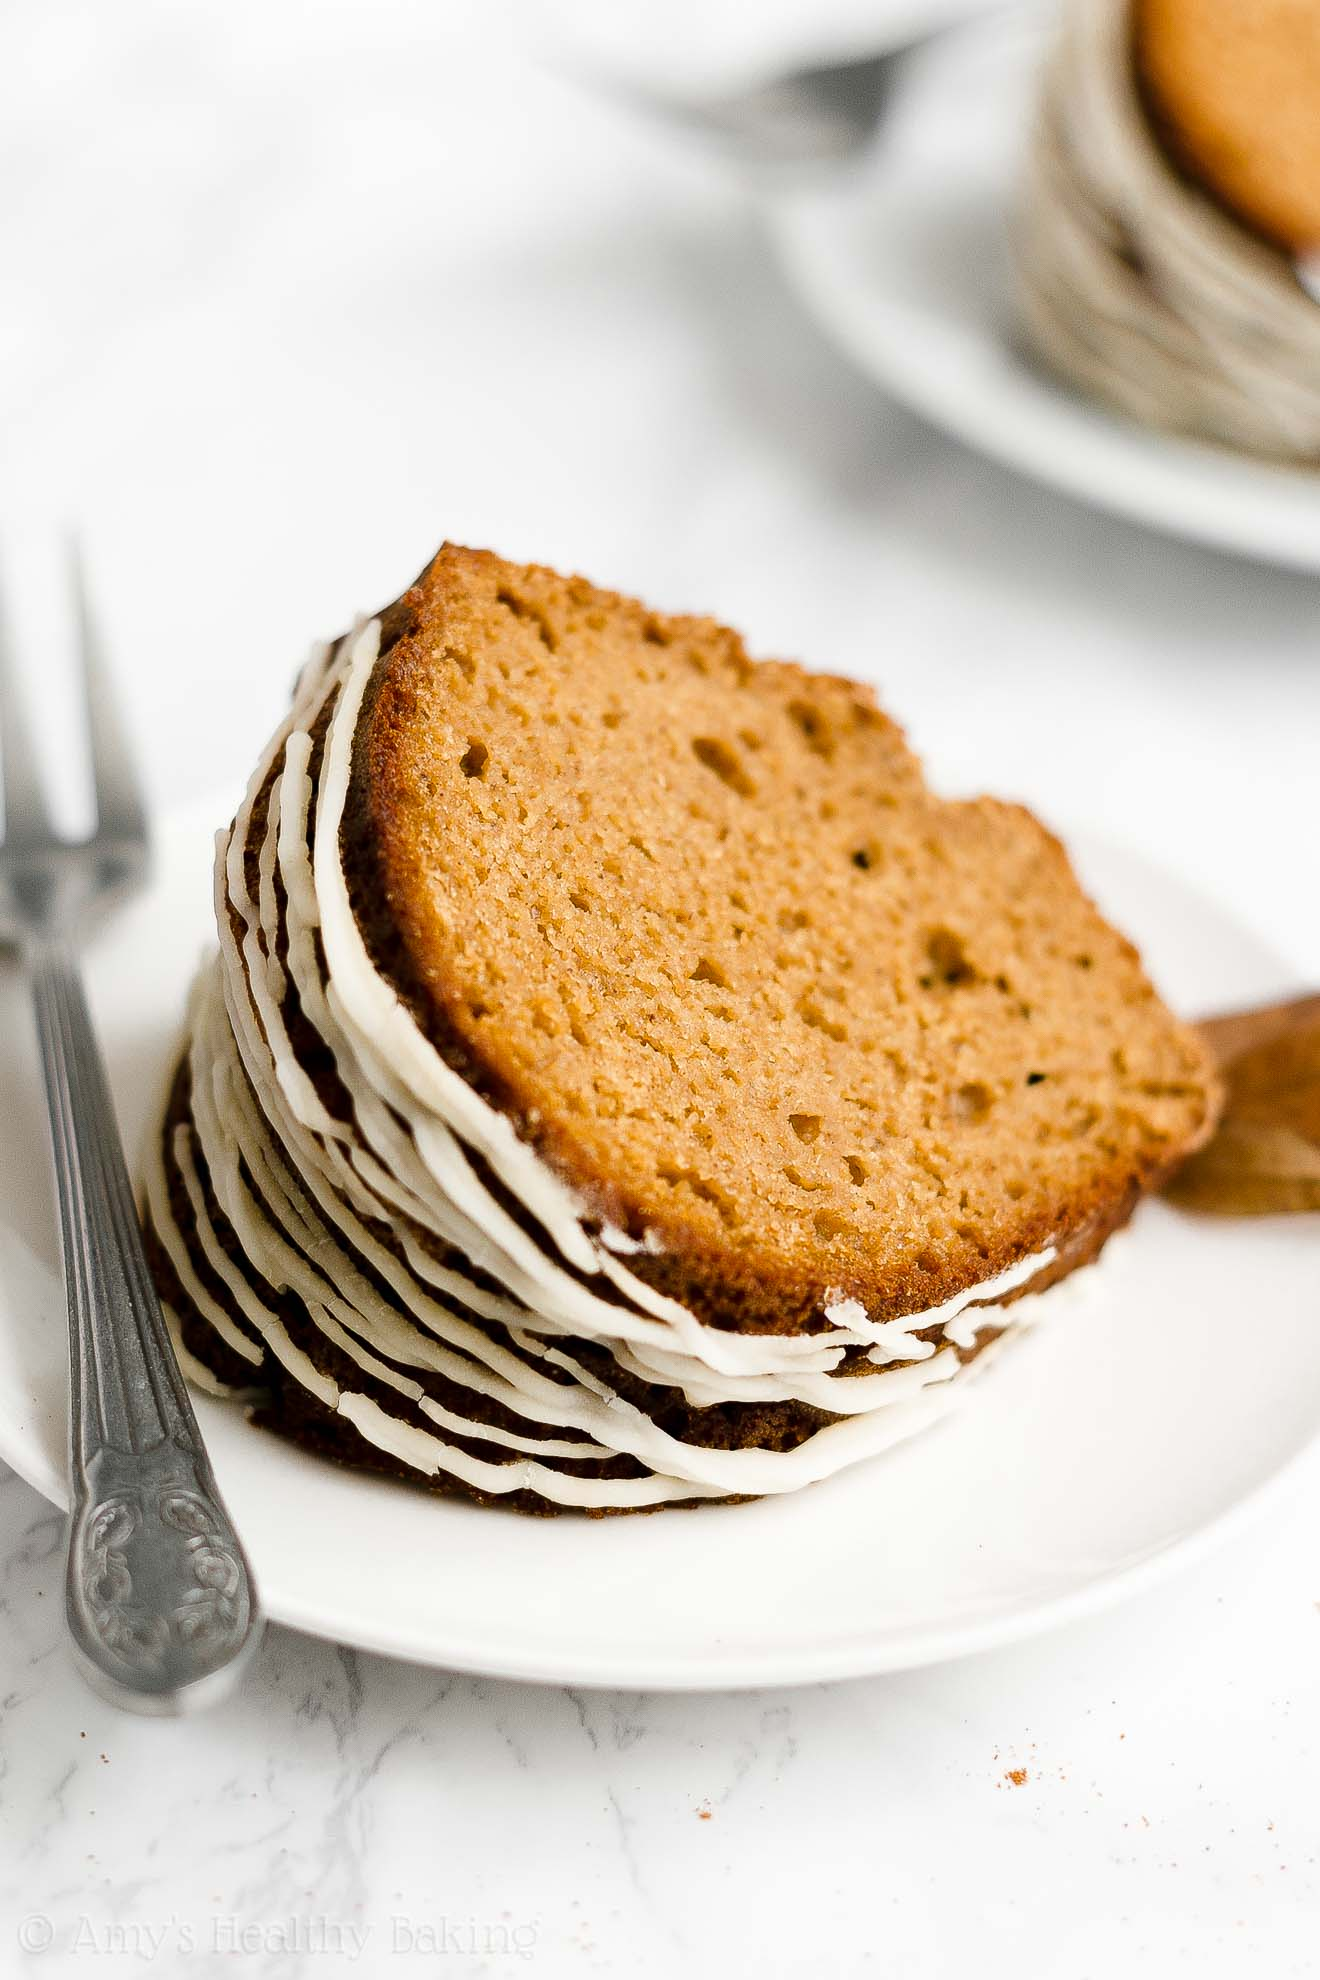 BEST Healthy Whole Wheat Low Sugar Moist Gingerbread Bundt Cake with Glaze